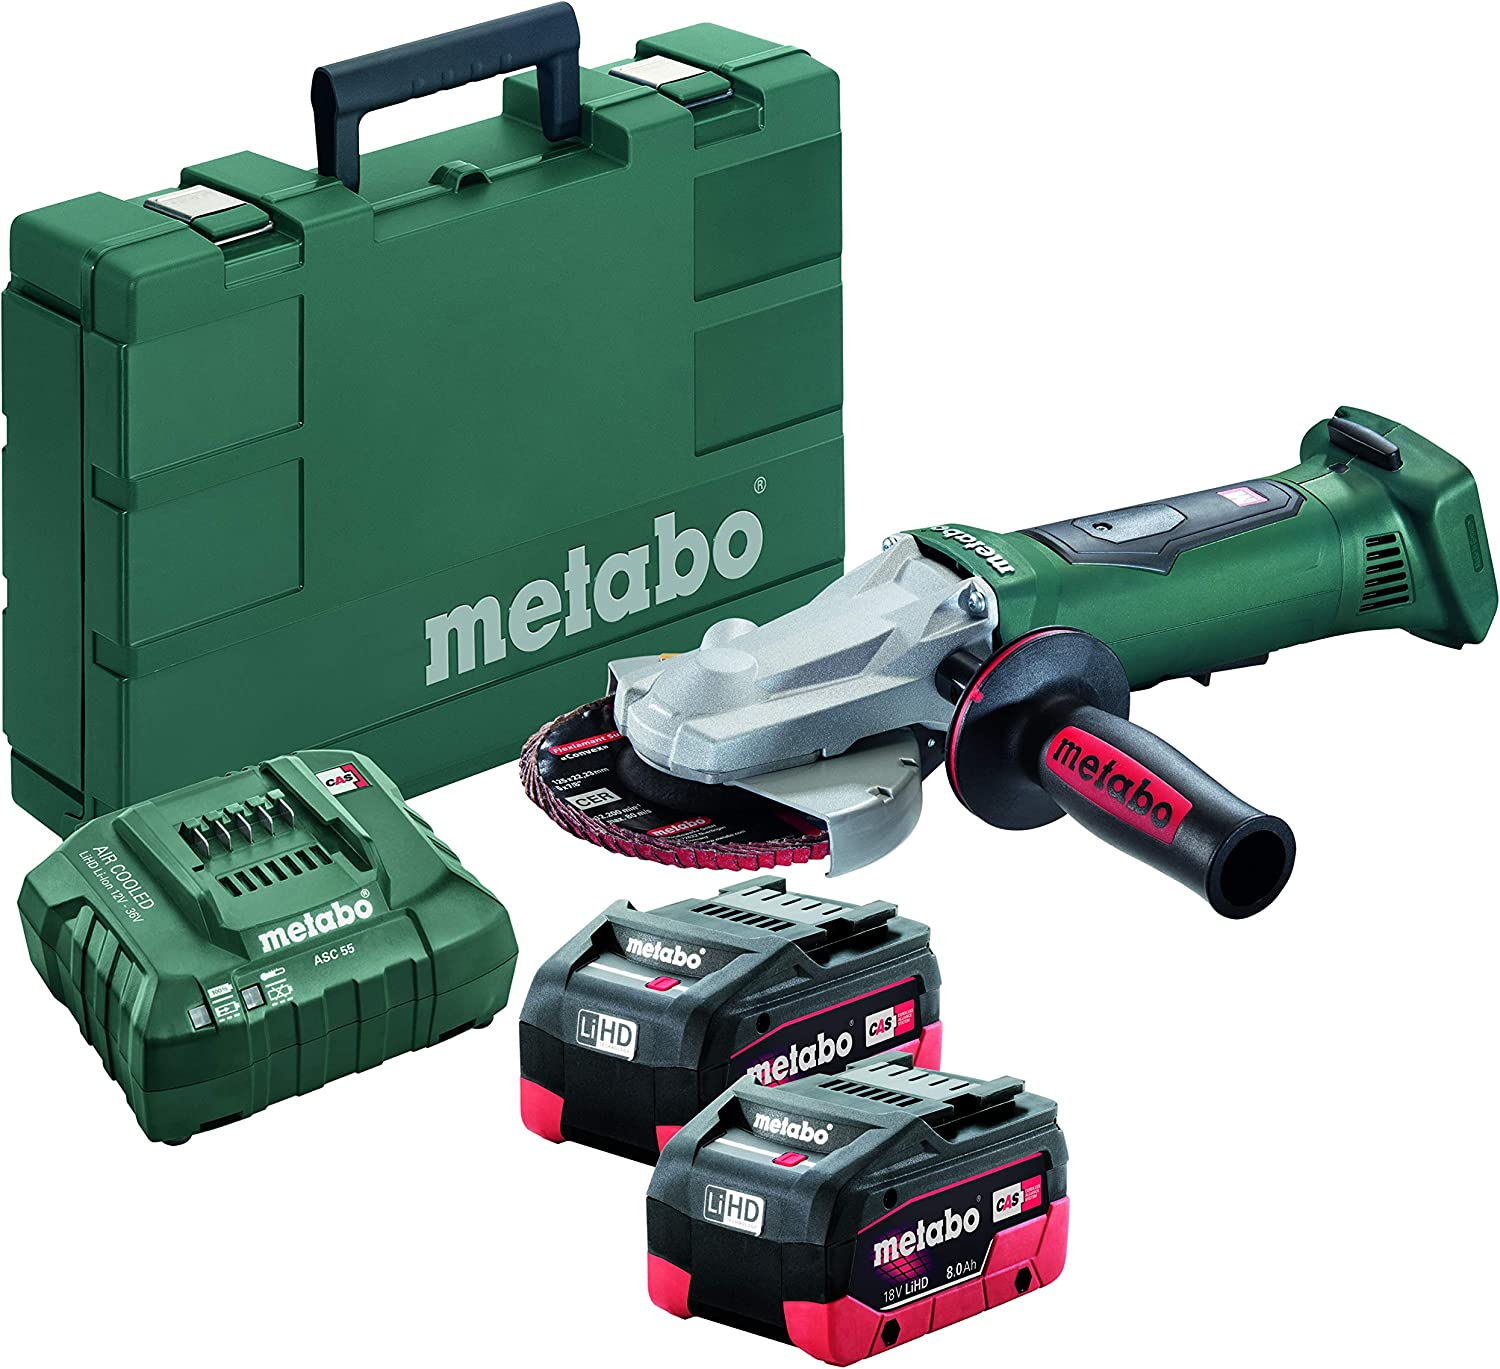 Metabo 18V 5 Flat Head Angle Grinder 6.2Ah Kit